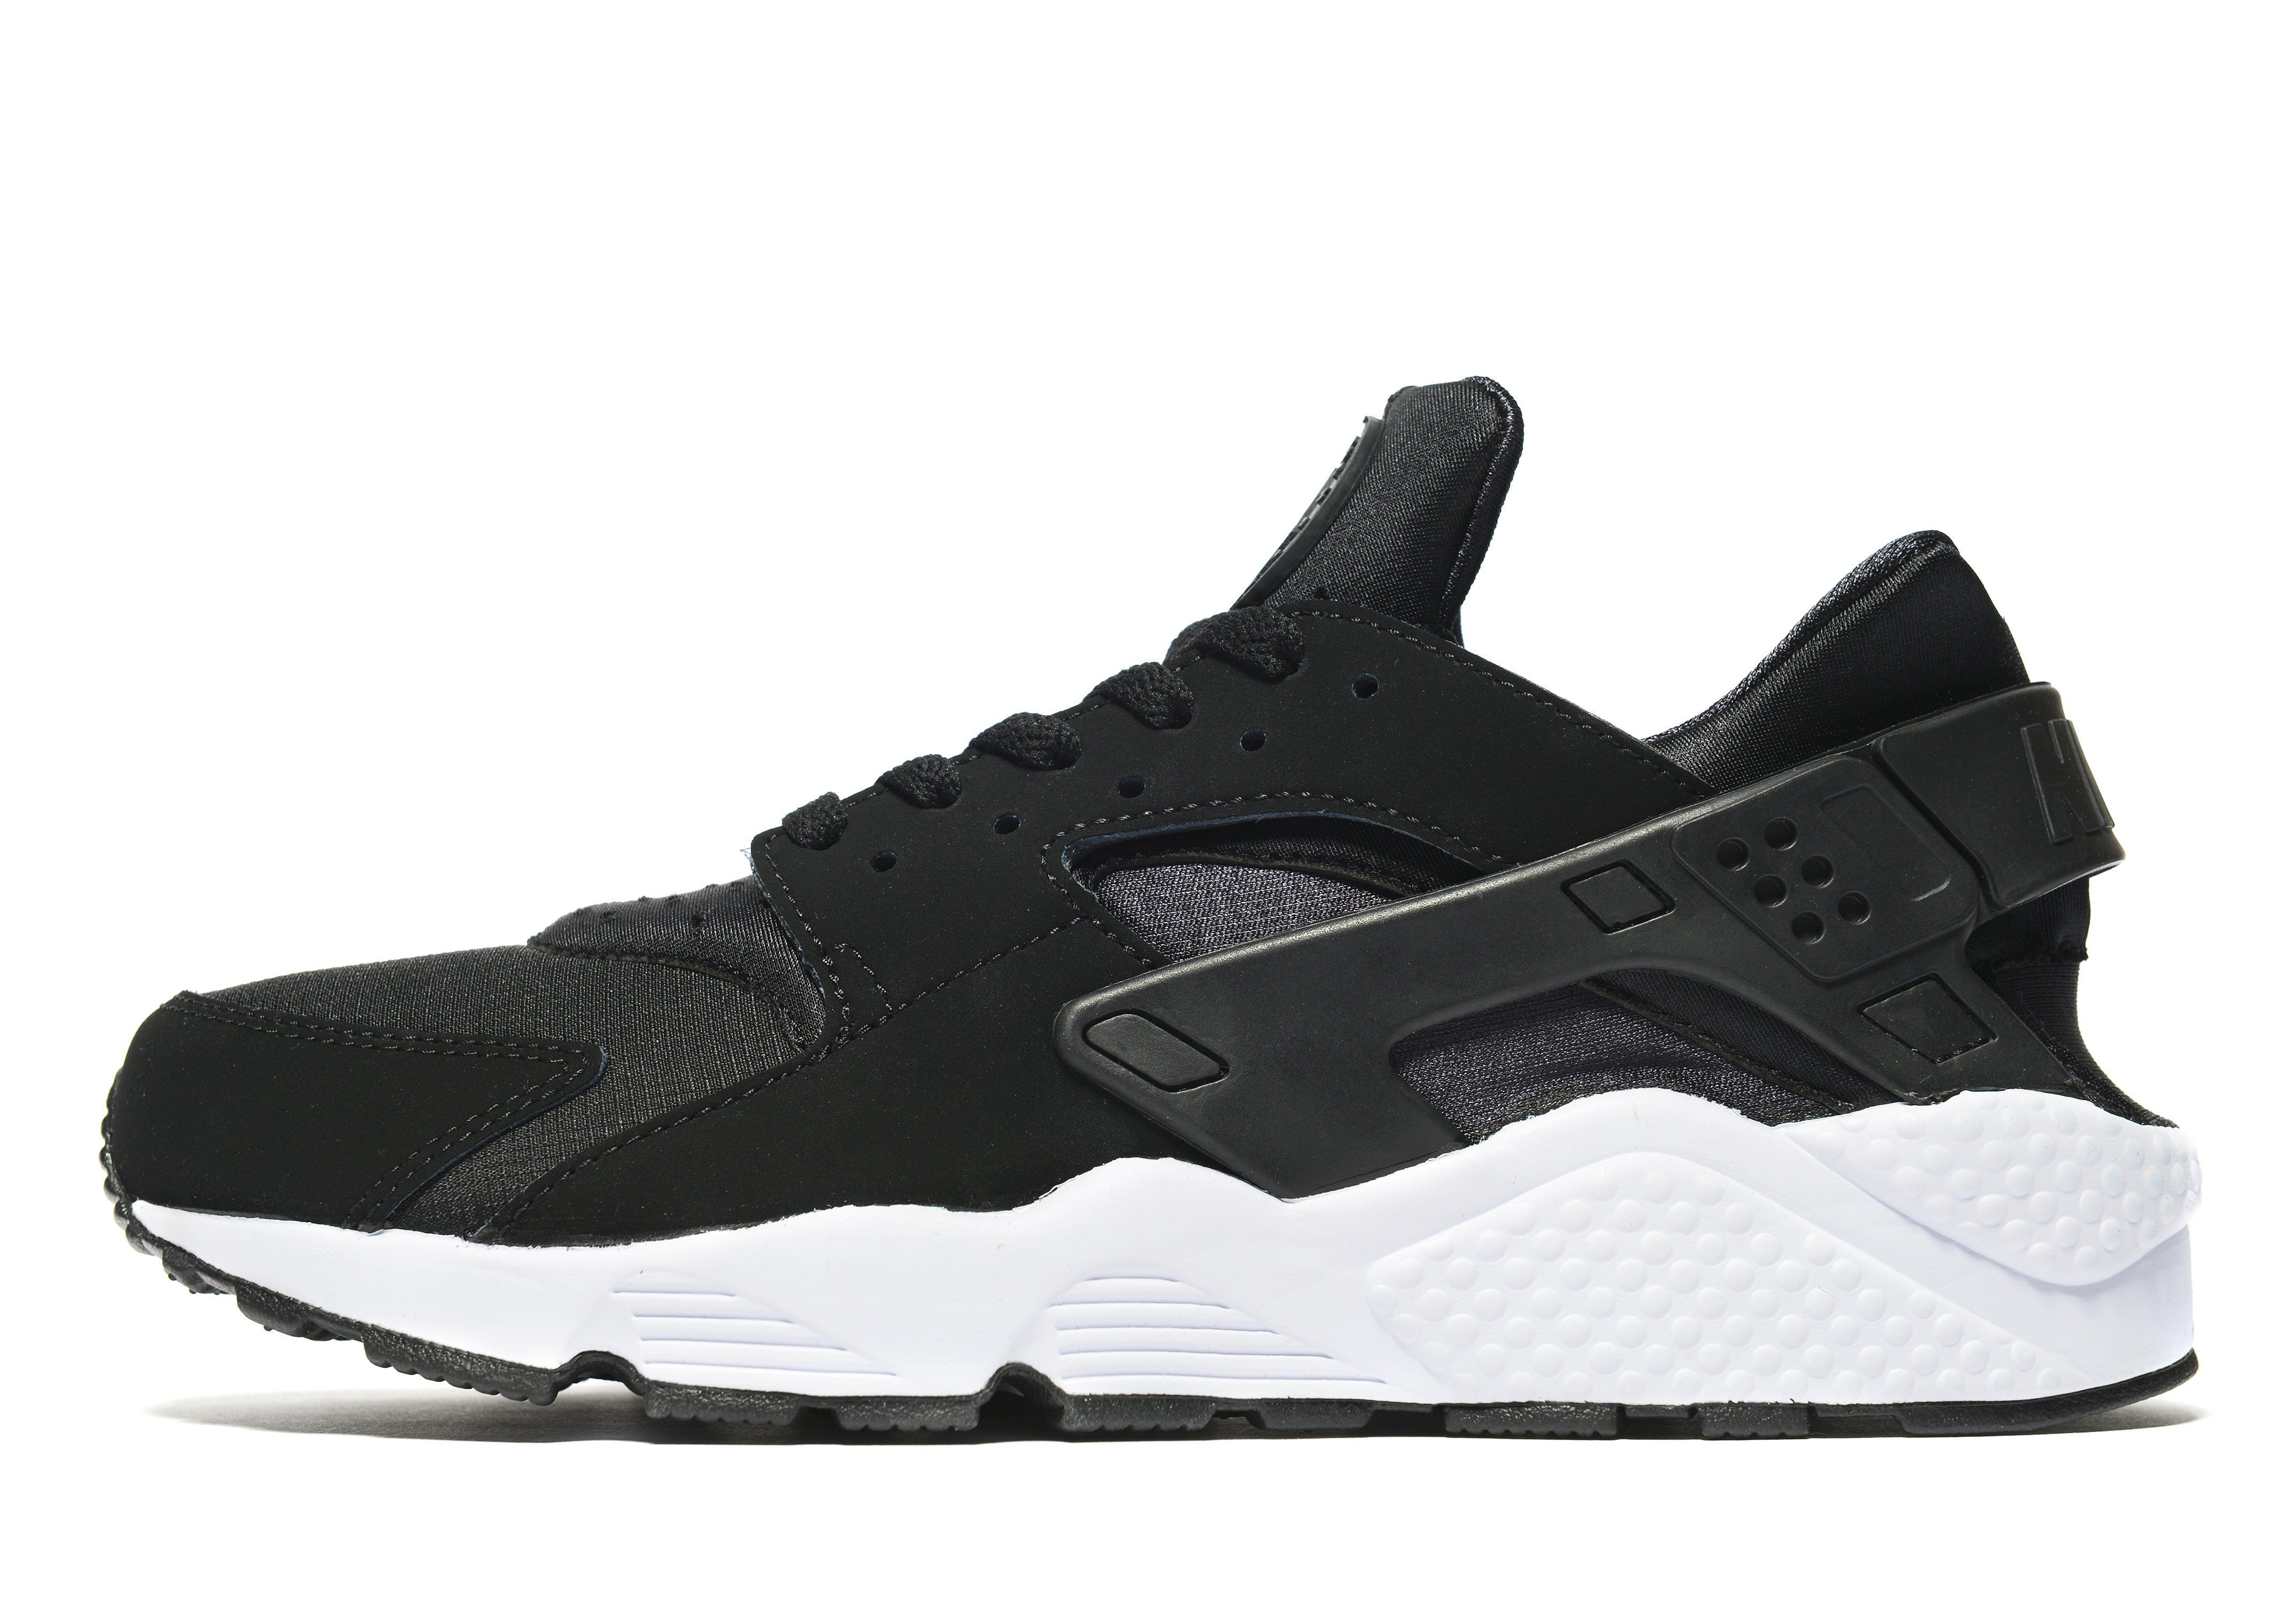 the best attitude 4bc3c 1c94b Nike Air Huarache - Shop online for Nike Air Huarache with JD Sports, the  UKs leading sports fashion retailer.